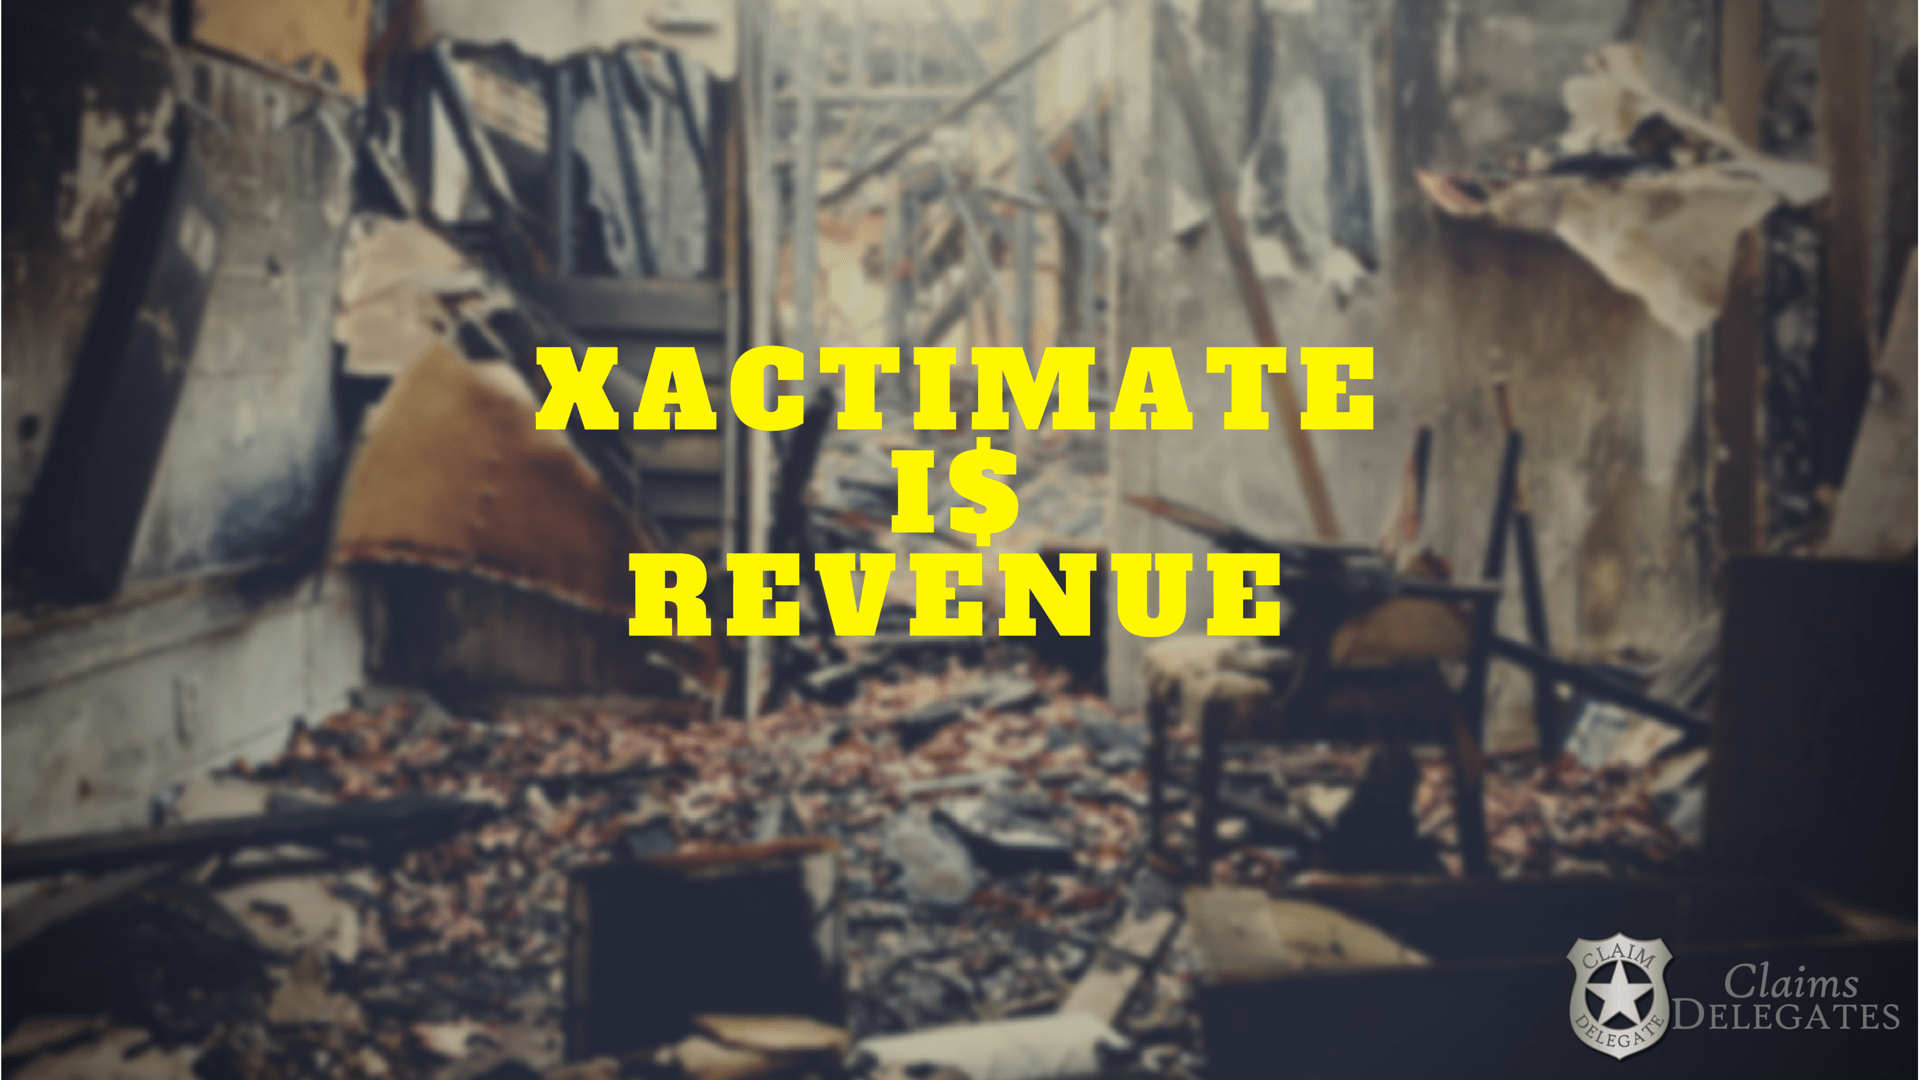 How to Make $1,000/hr using Xactimate for Water Damage